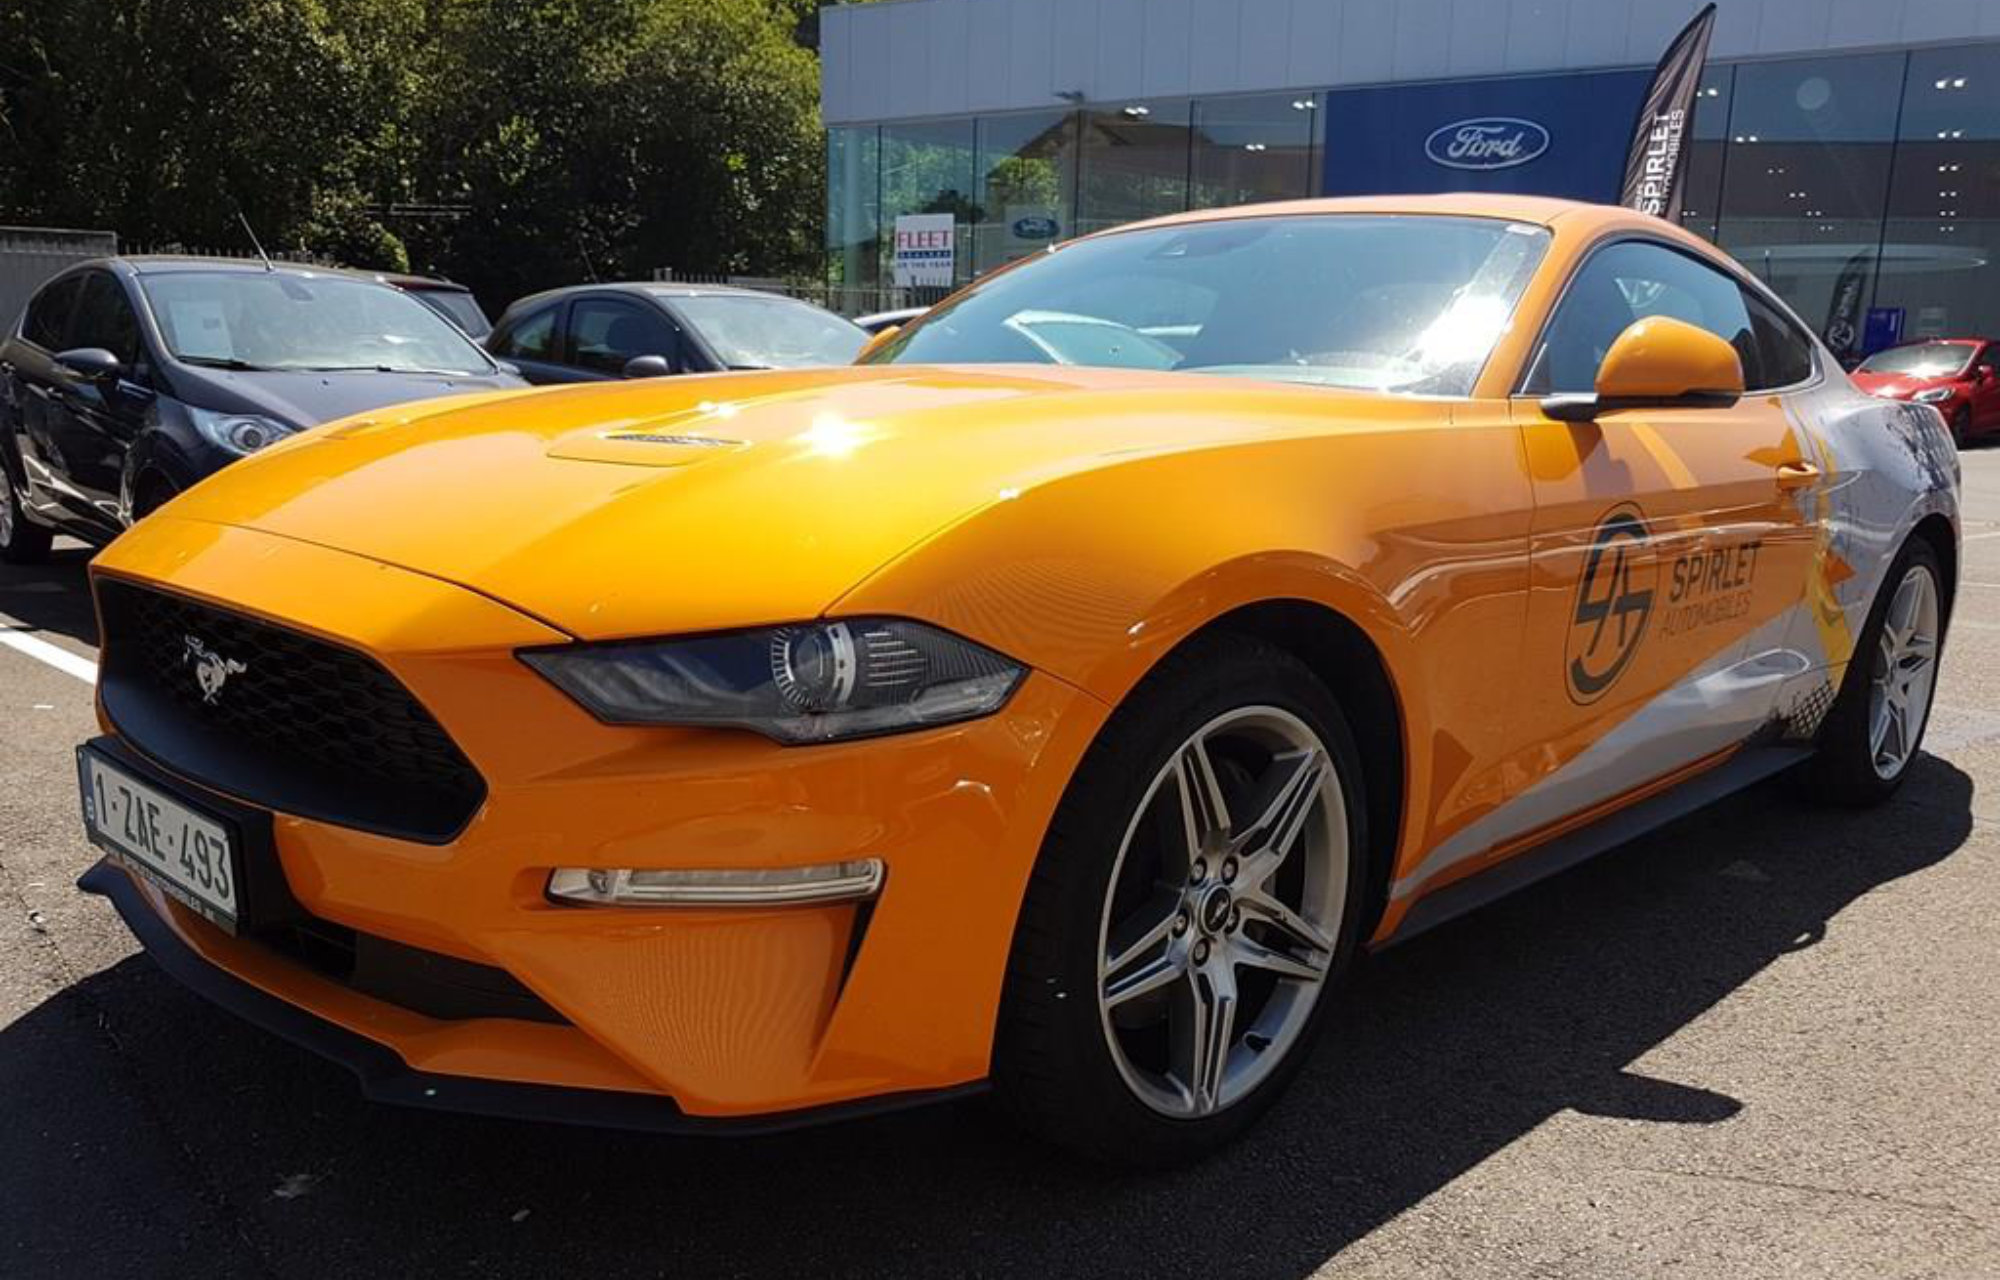 Nouvelle Ford Mustang Spirletautomobiles